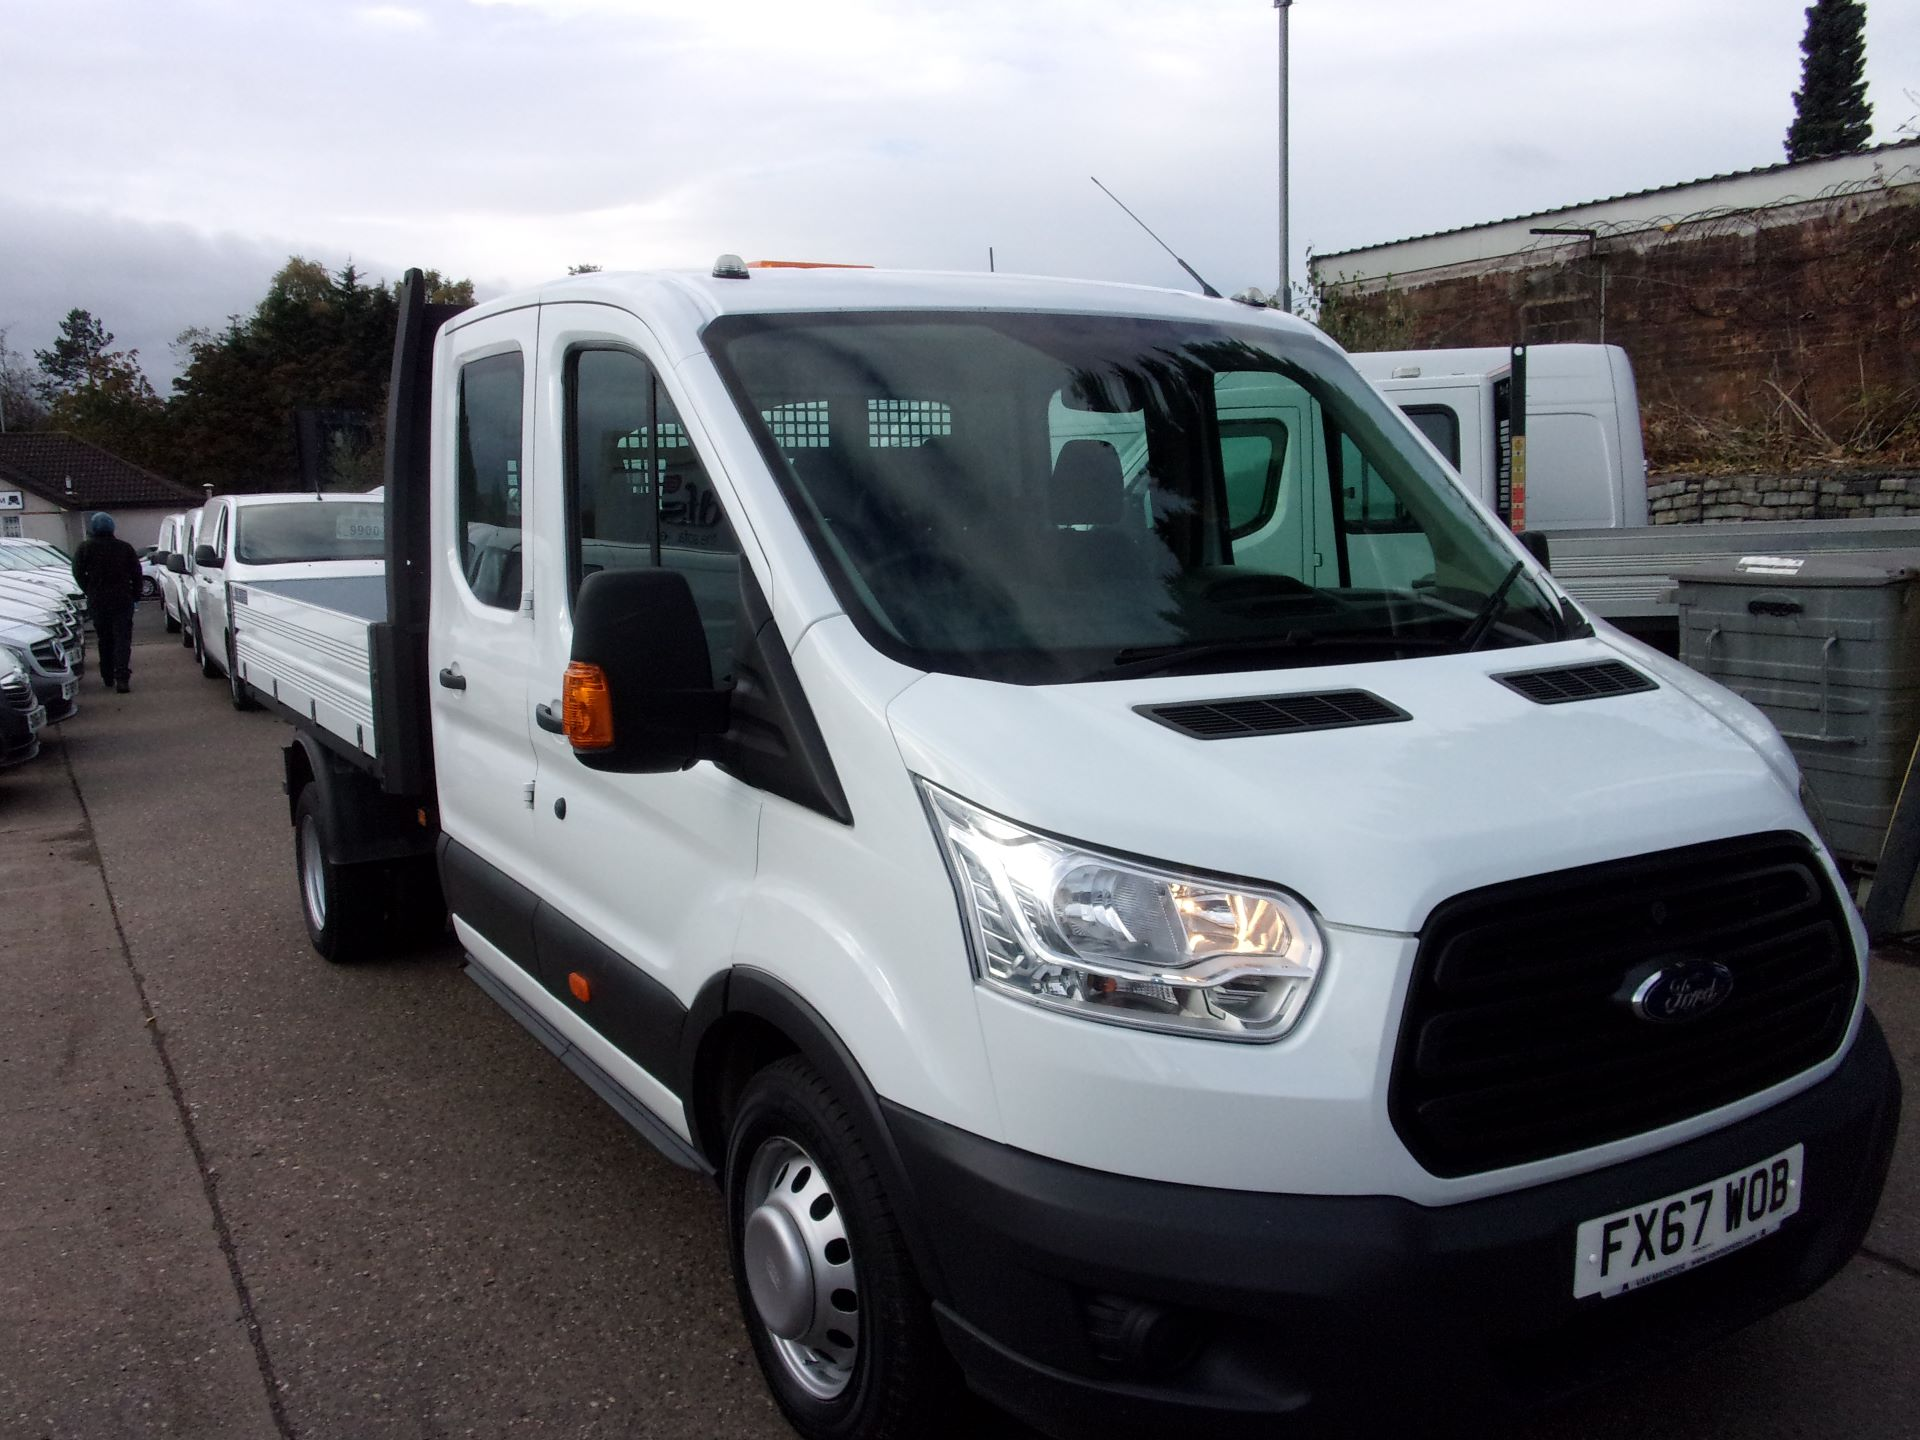 2017 Ford Transit 350 L3 RWD DOUBLE CAB TIPPER 130PS EURO 5 (FX67WOB)